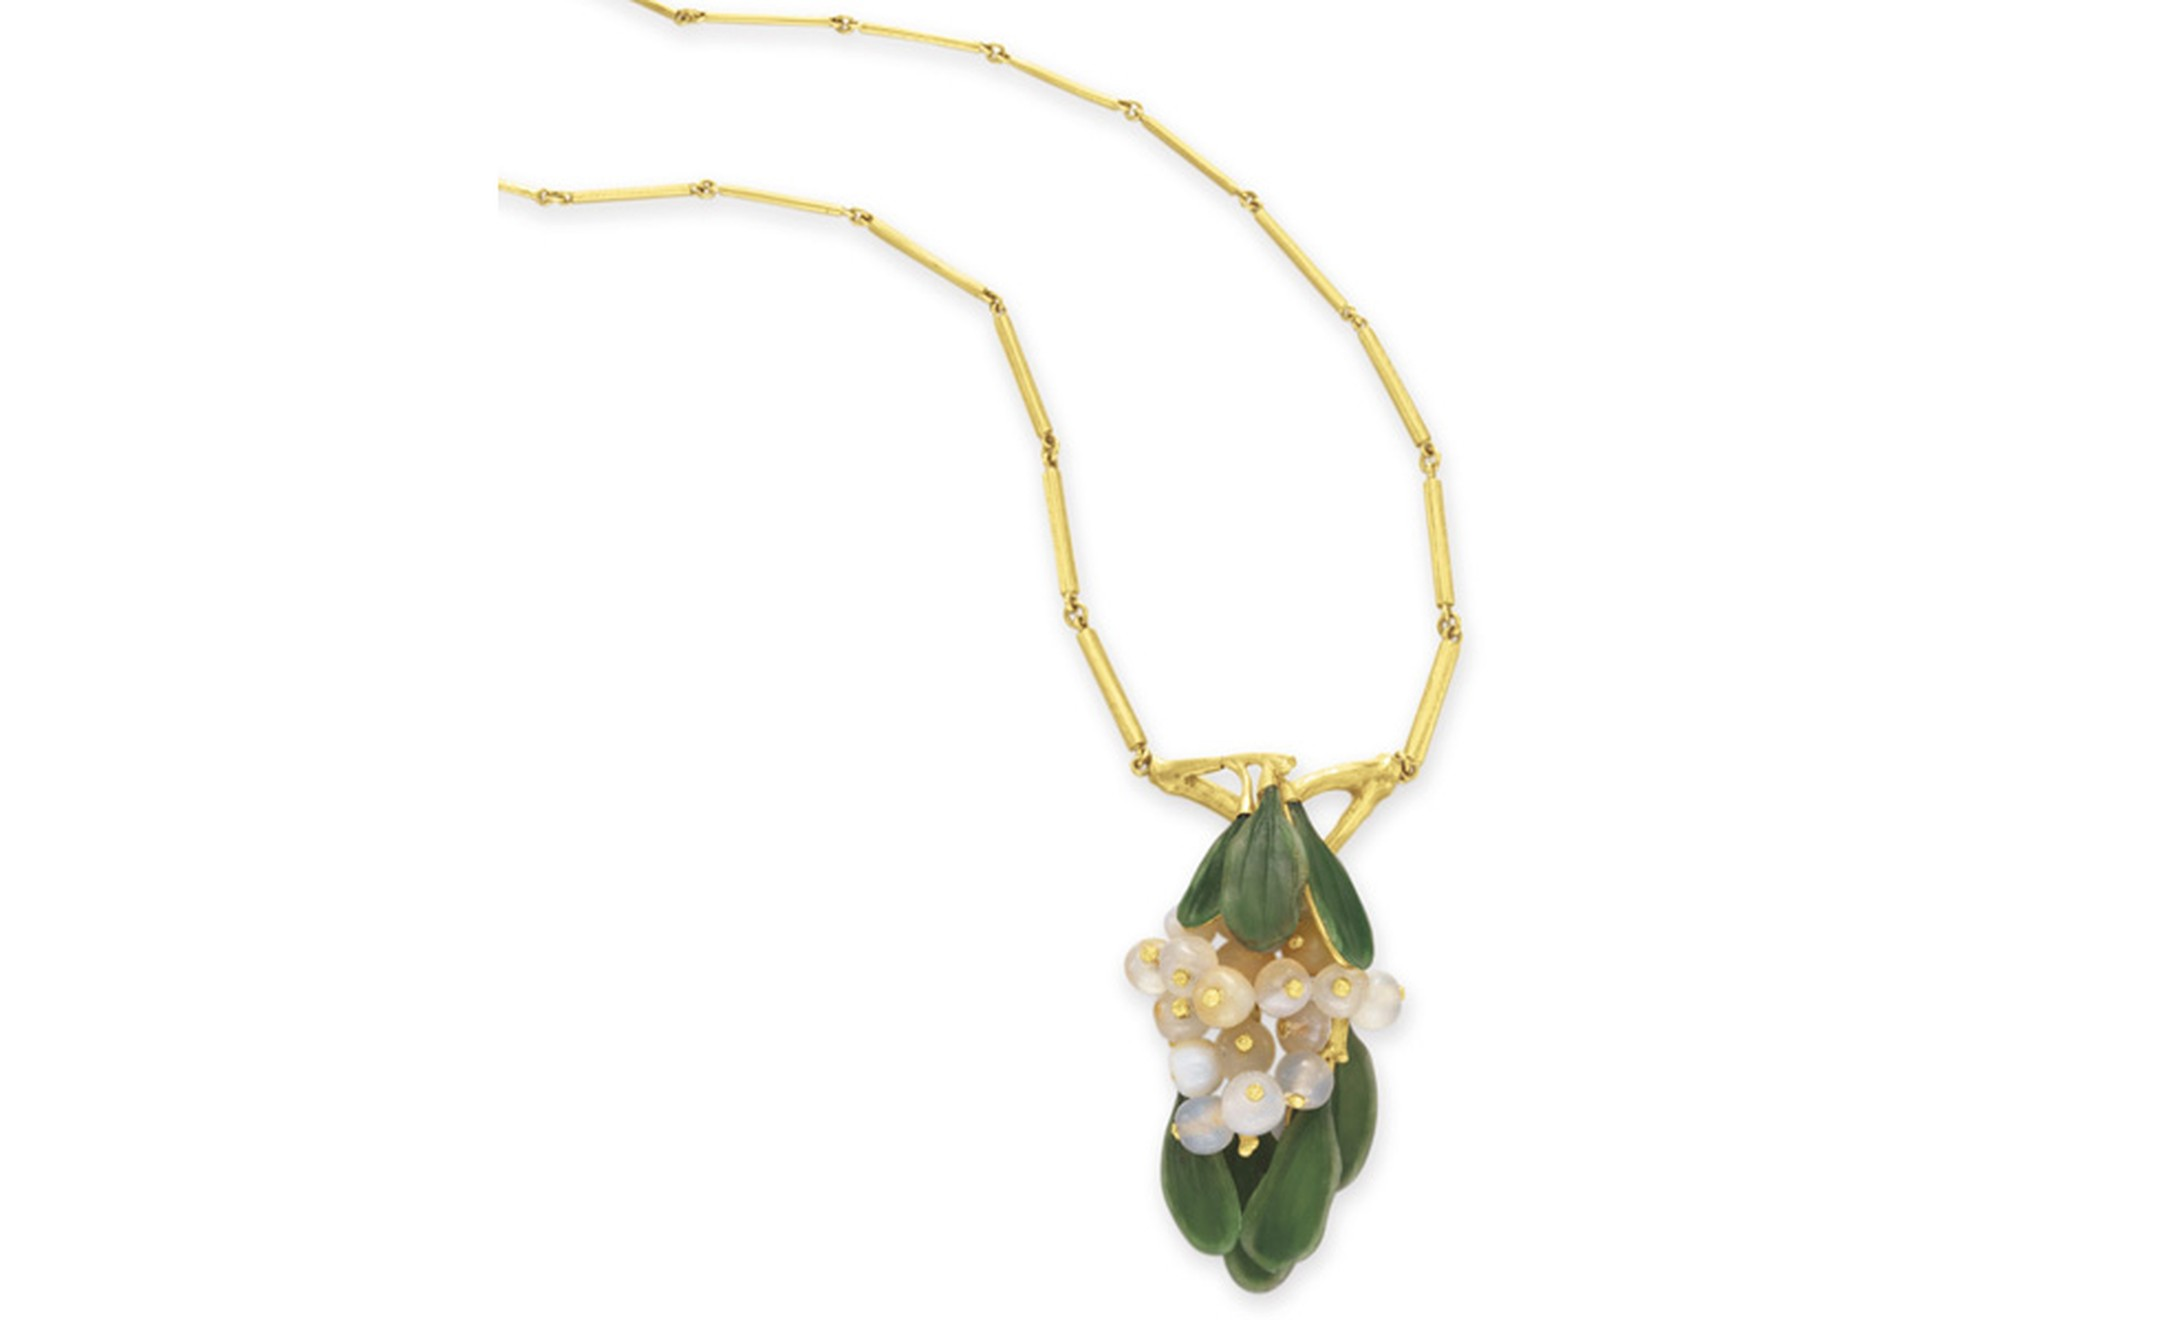 "LOT 51 A COLORED GLASS AND GOLD ""MISTLETOE"" PENDANT NECKLACE, BY LOUIS COMFORT TIFFANY, TIFFANY & CO. By Louis Comfort Tiffany, signed Tiffany & Co., marked PP no. 5 for the Panama-Pacific International Exposition Estimate $15,000-$20,000 SOLD F..."